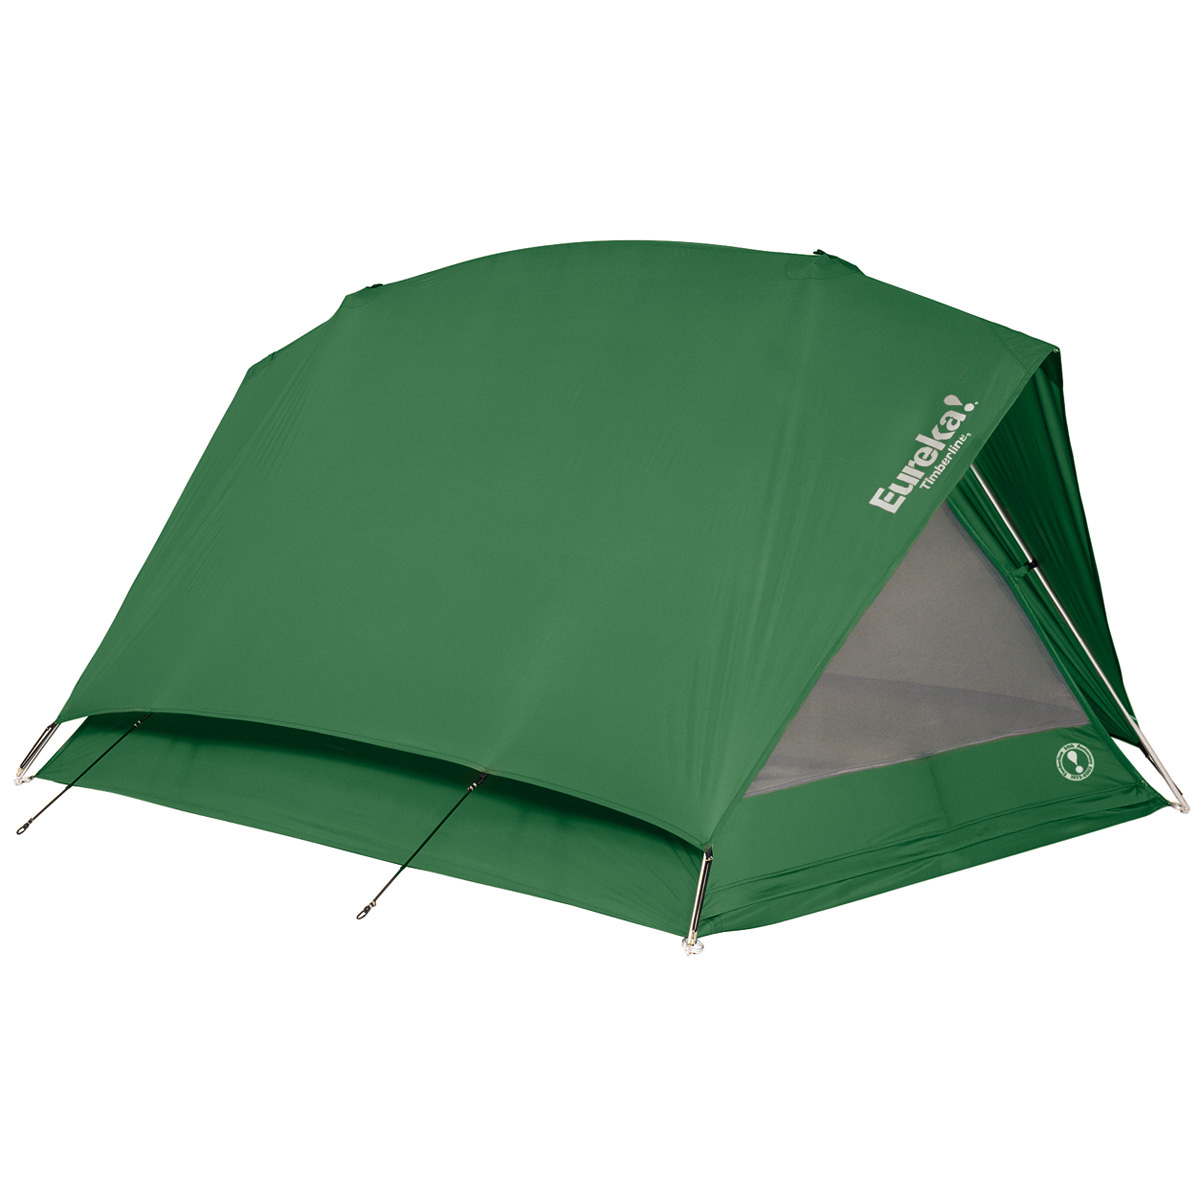 Timberline® 2 Person Tent  sc 1 st  Tents | Eureka! - Johnson Outdoors & 498534_alt01.jpg